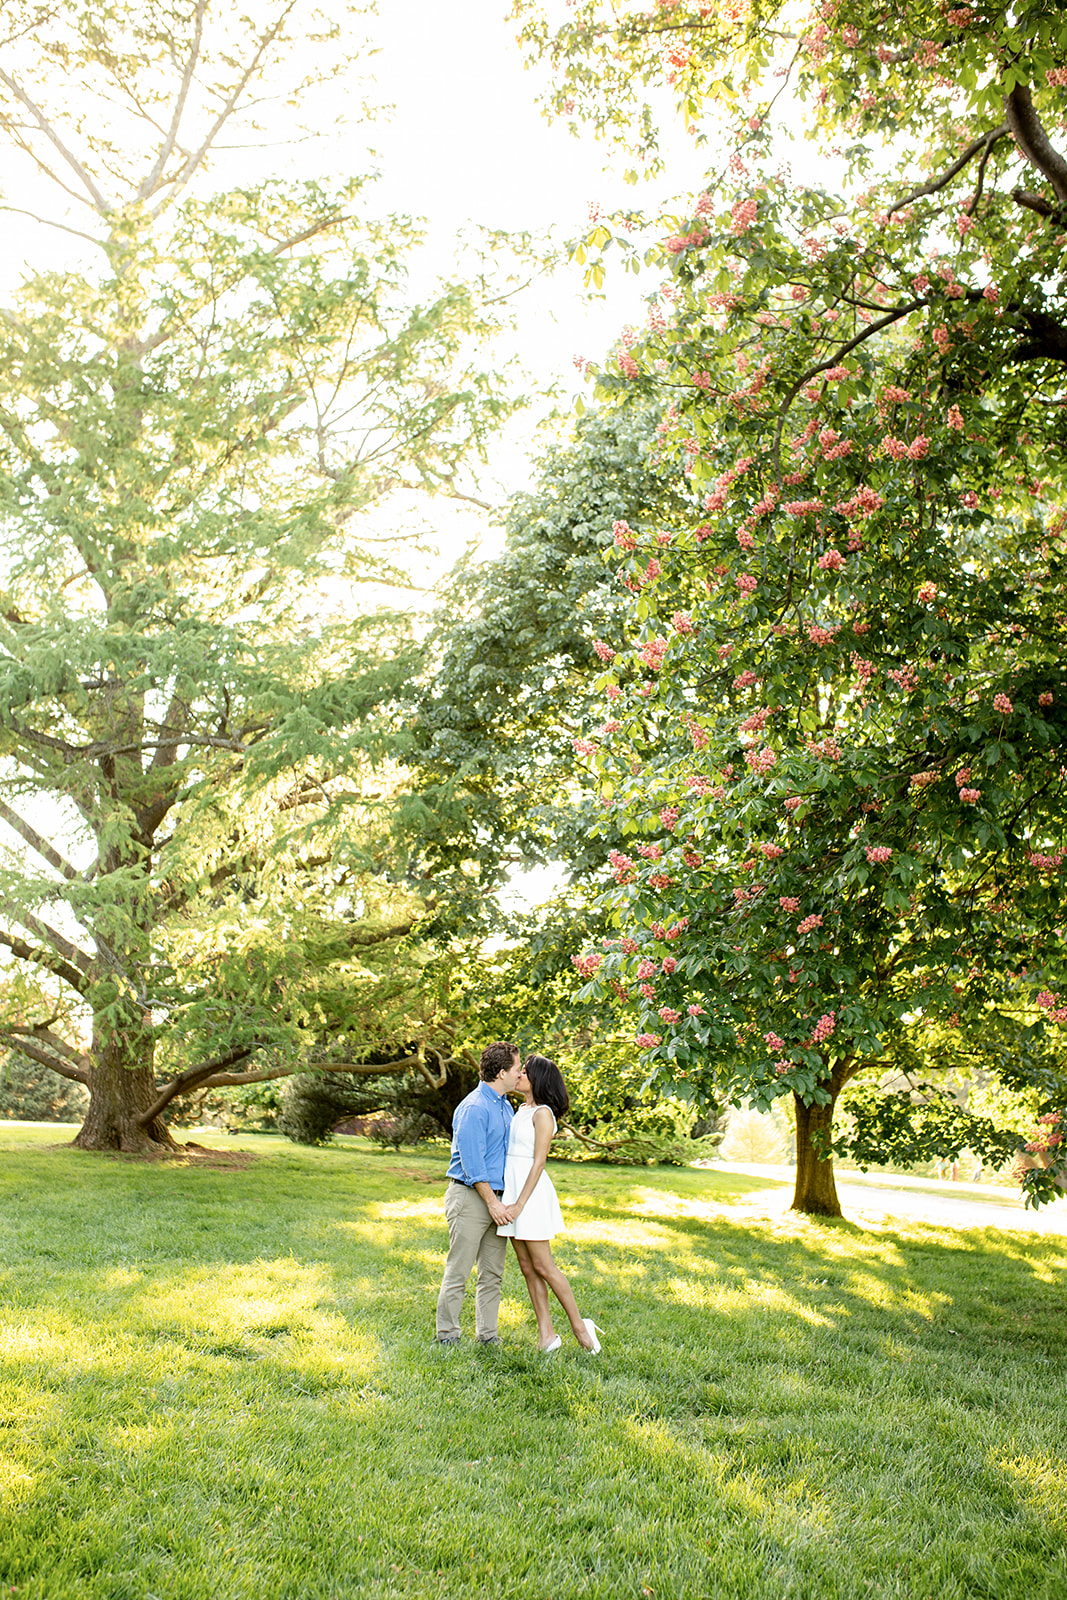 Karen  Dannys Maymont Engagement Shoot - Image Property of www.j-dphoto.com